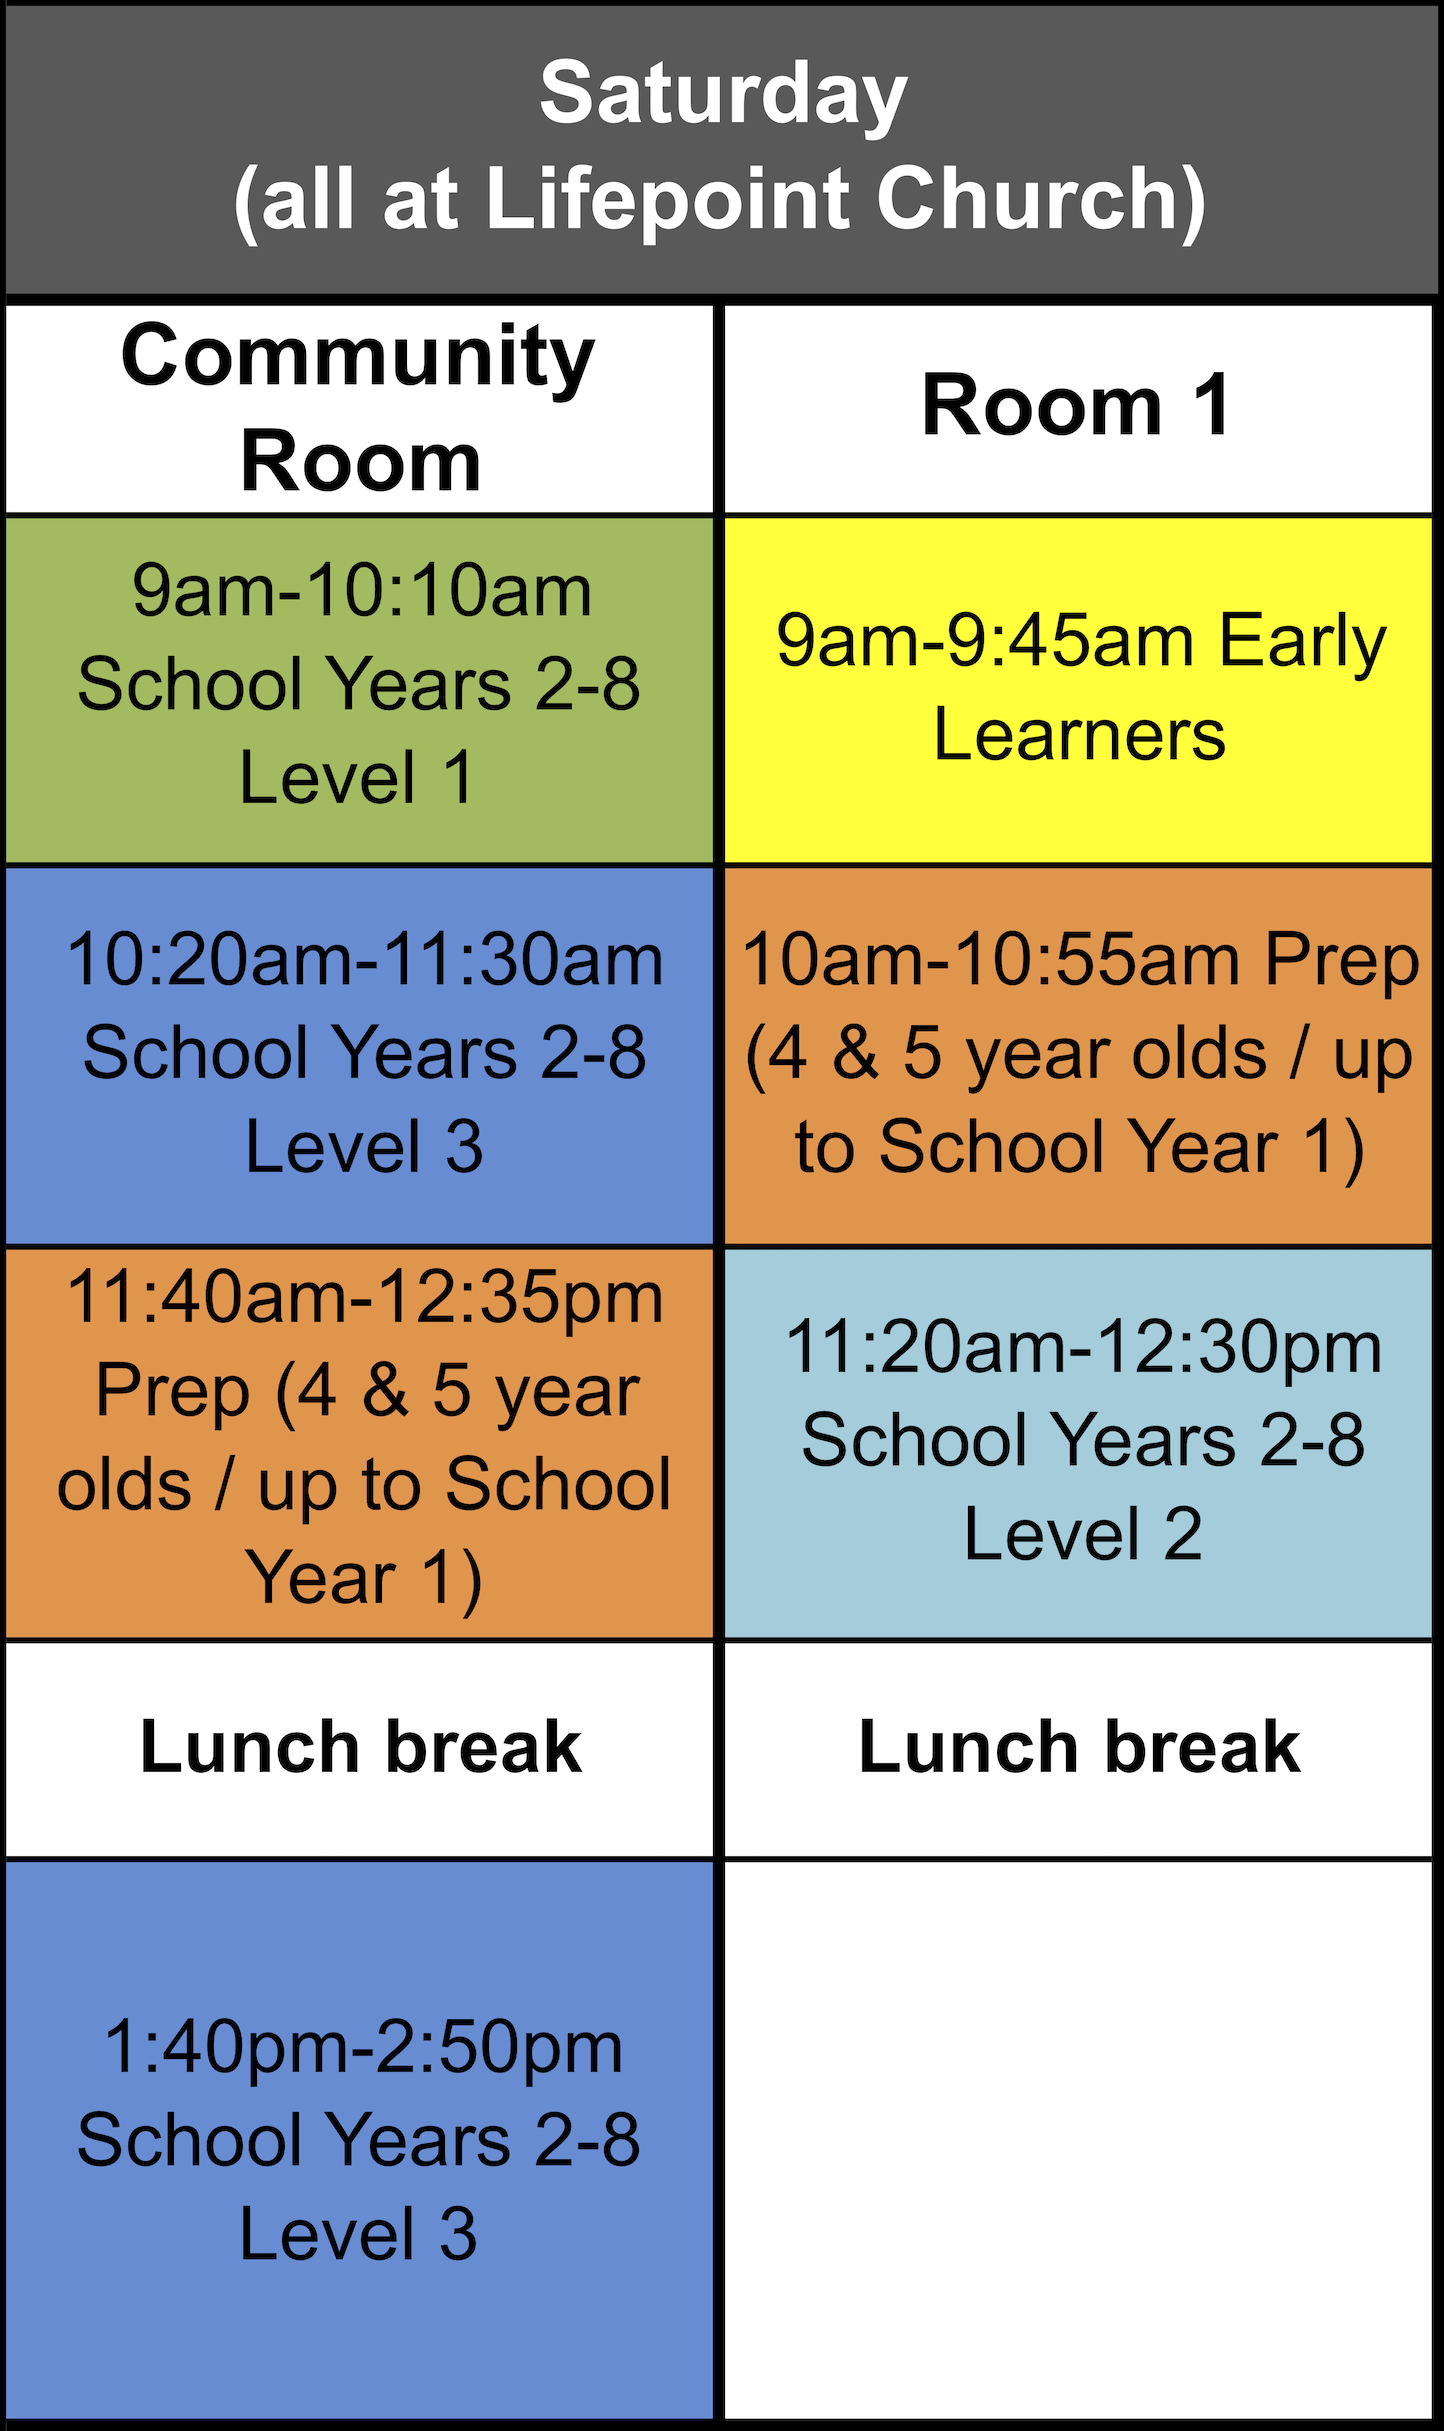 Saturday schedule for Term 3